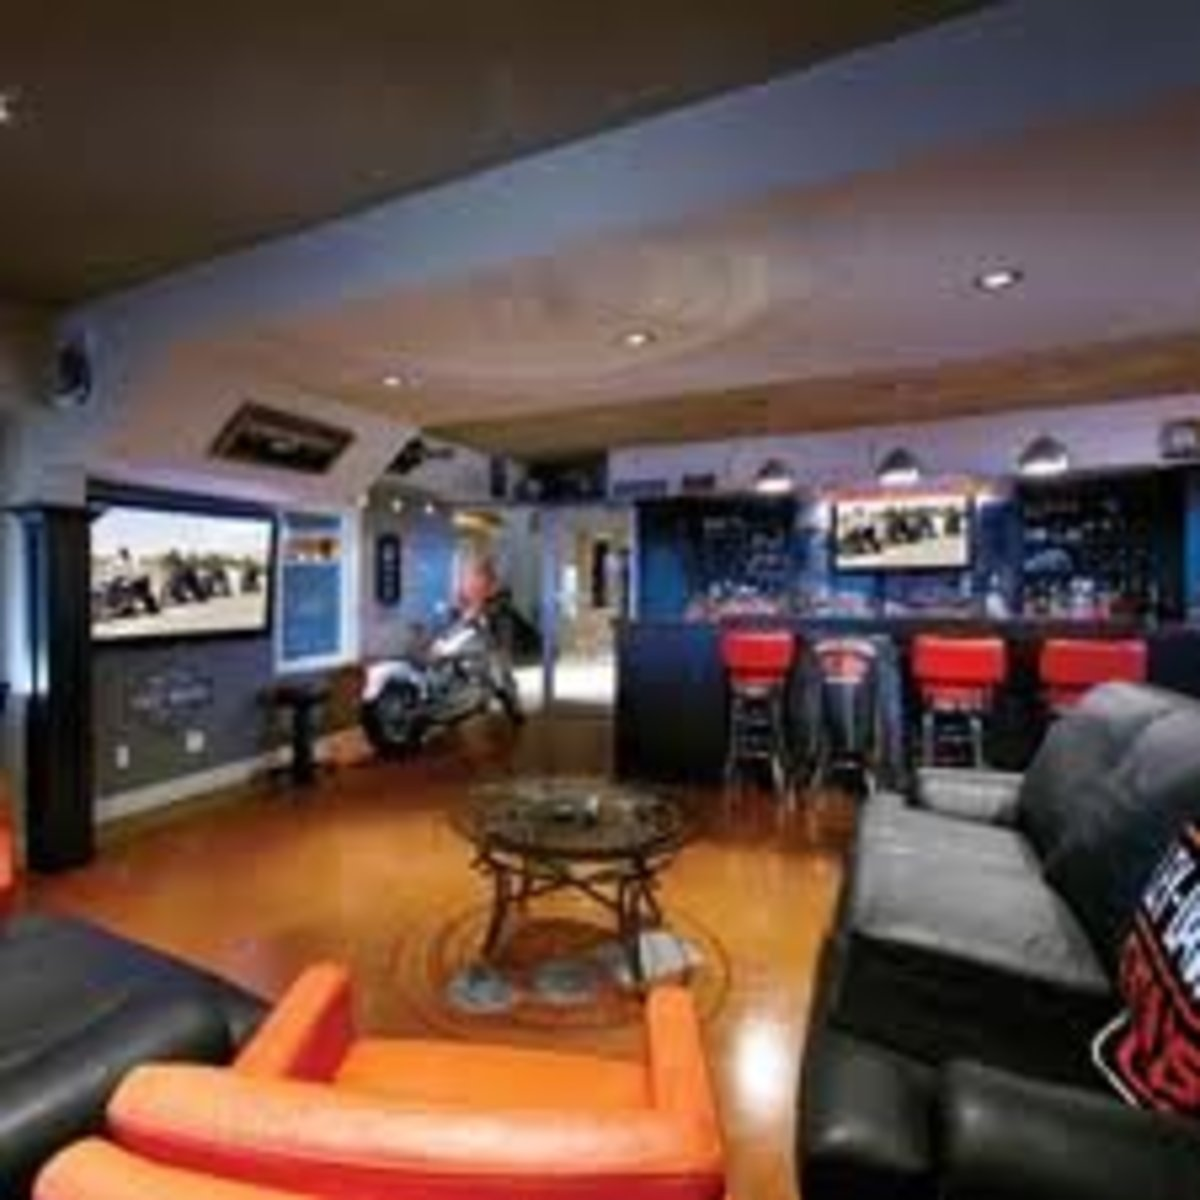 Man cave with full bar and comfortable furniturePhoto credit - http://www.electronichouse.com/article/10_manliest_man_caves/